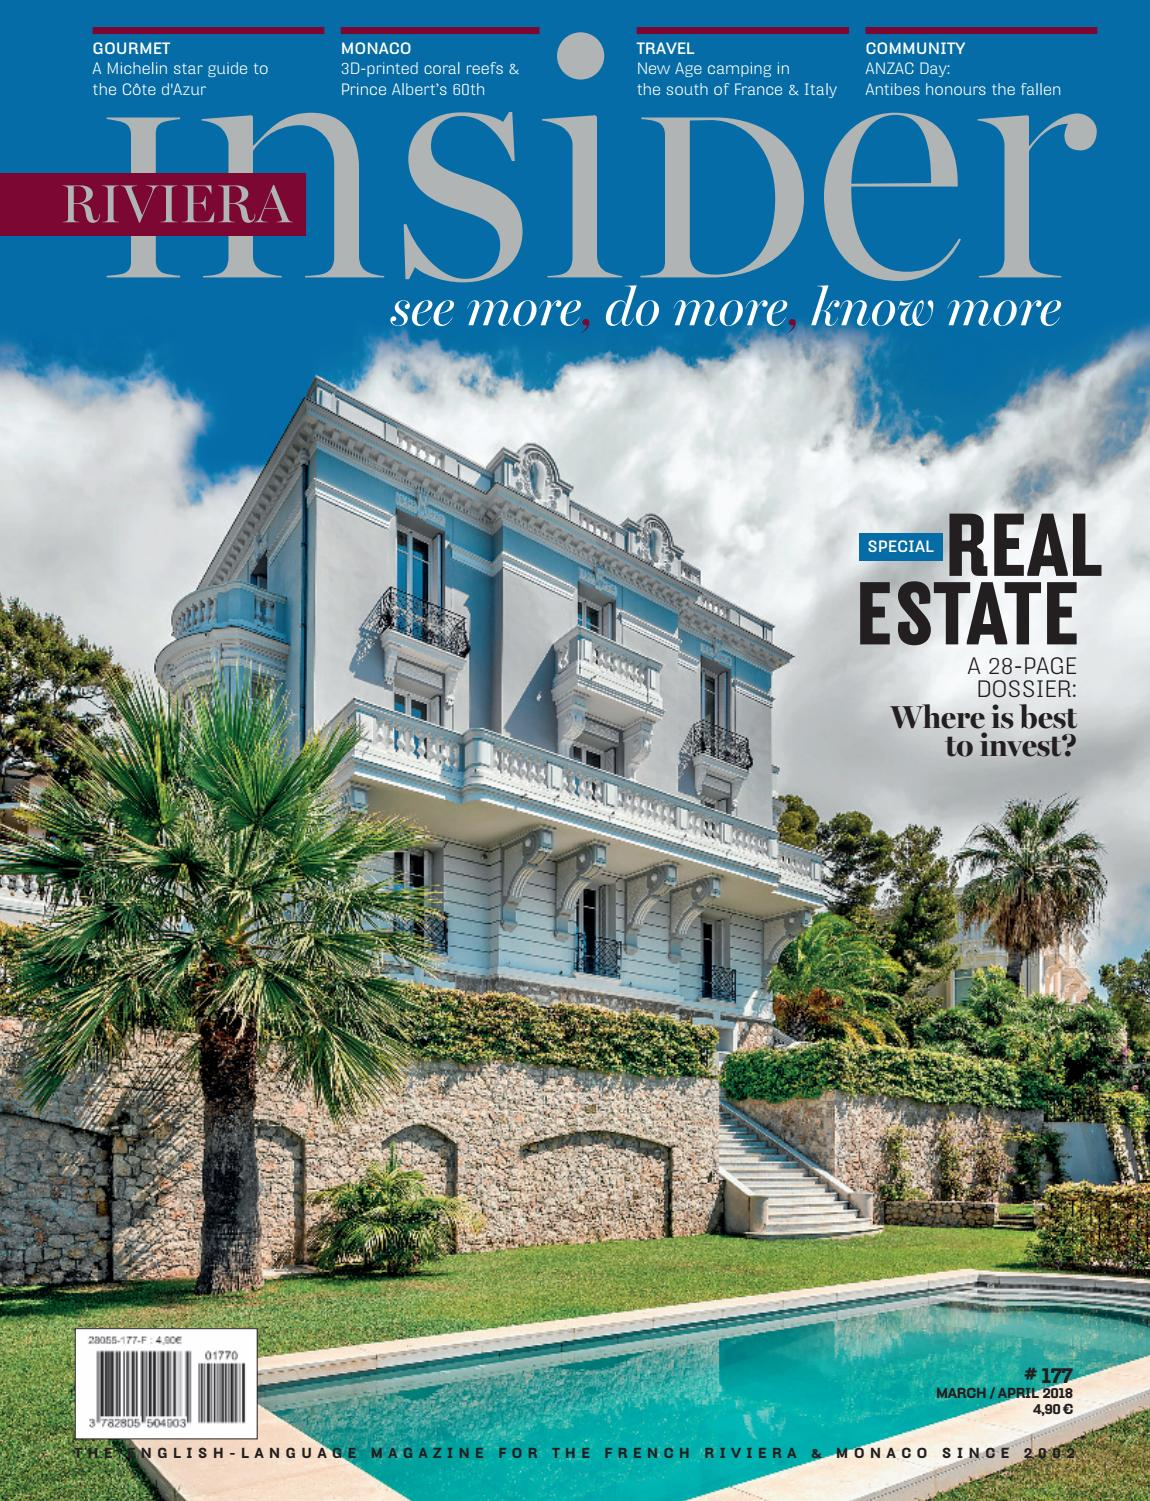 Euromaster Salon De Provence Riviera Insider March April 2018 By Riviera Press Issuu